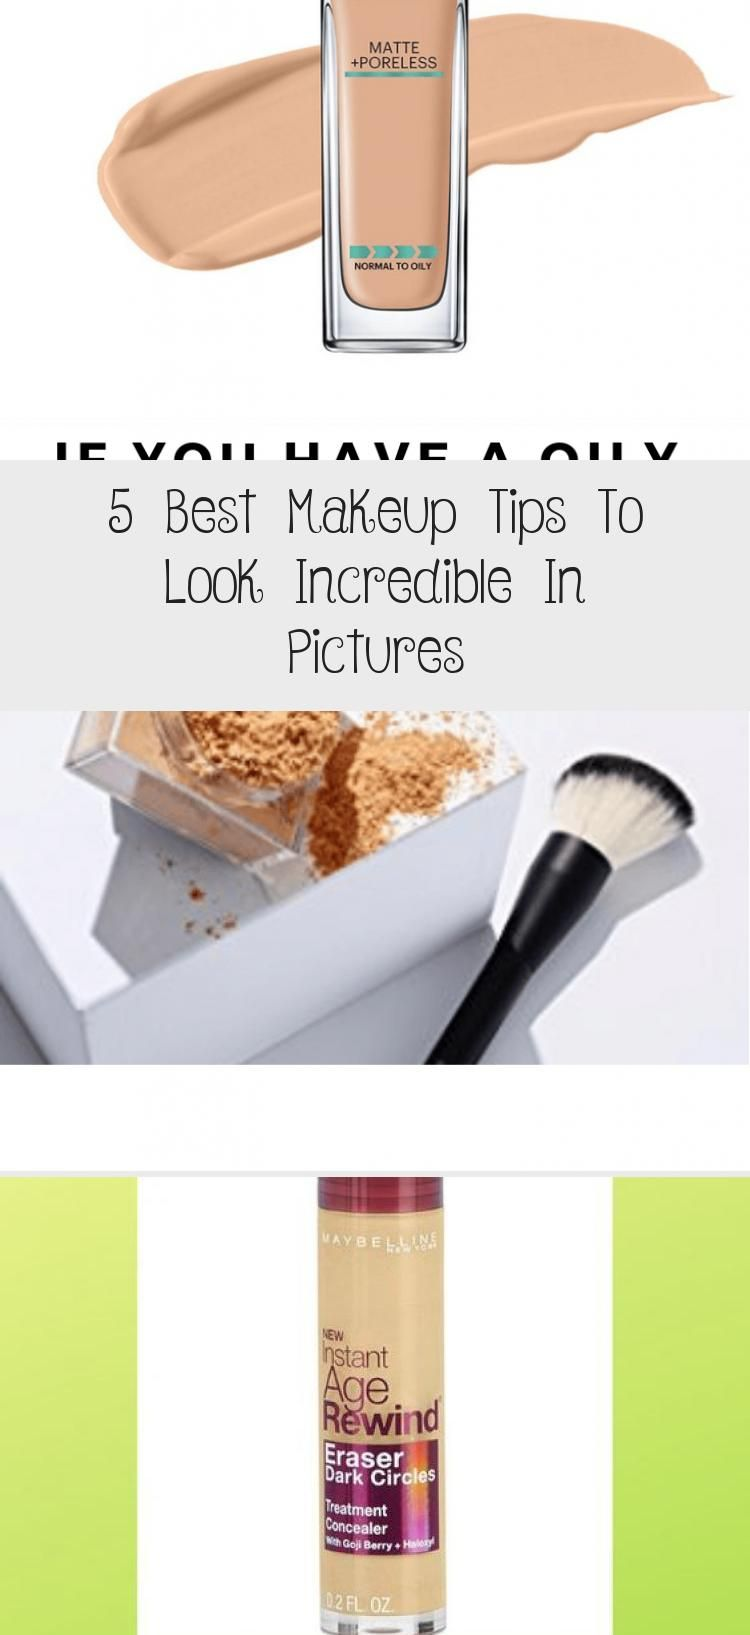 5 Best Makeup Tips To Look Incredible In Pictures